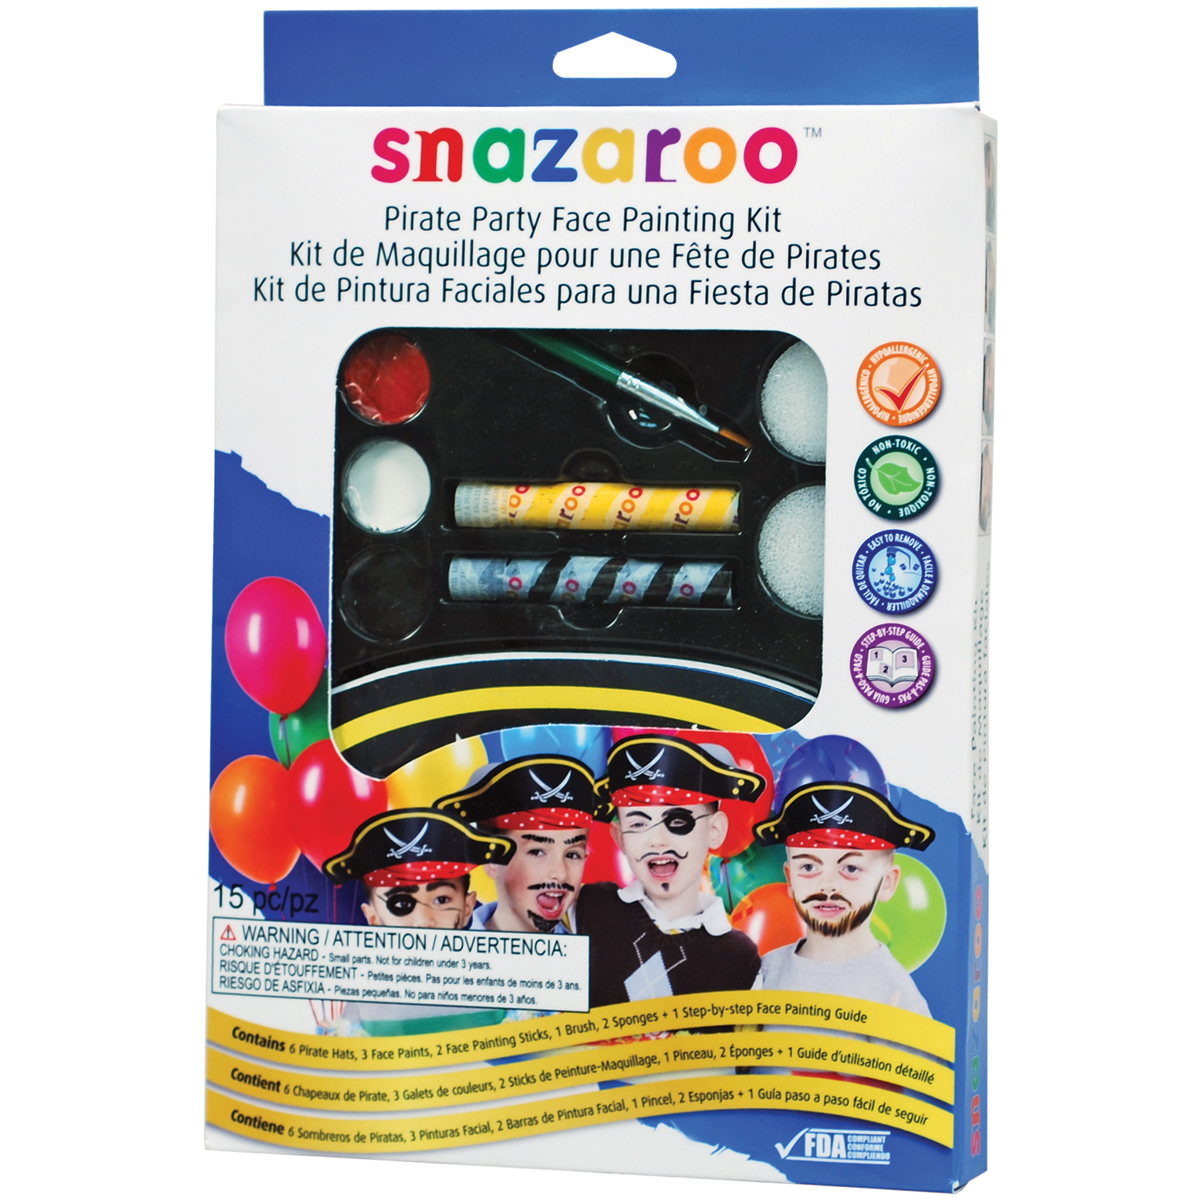 Reeves Snazaroo Face Painting Kit, Pirate